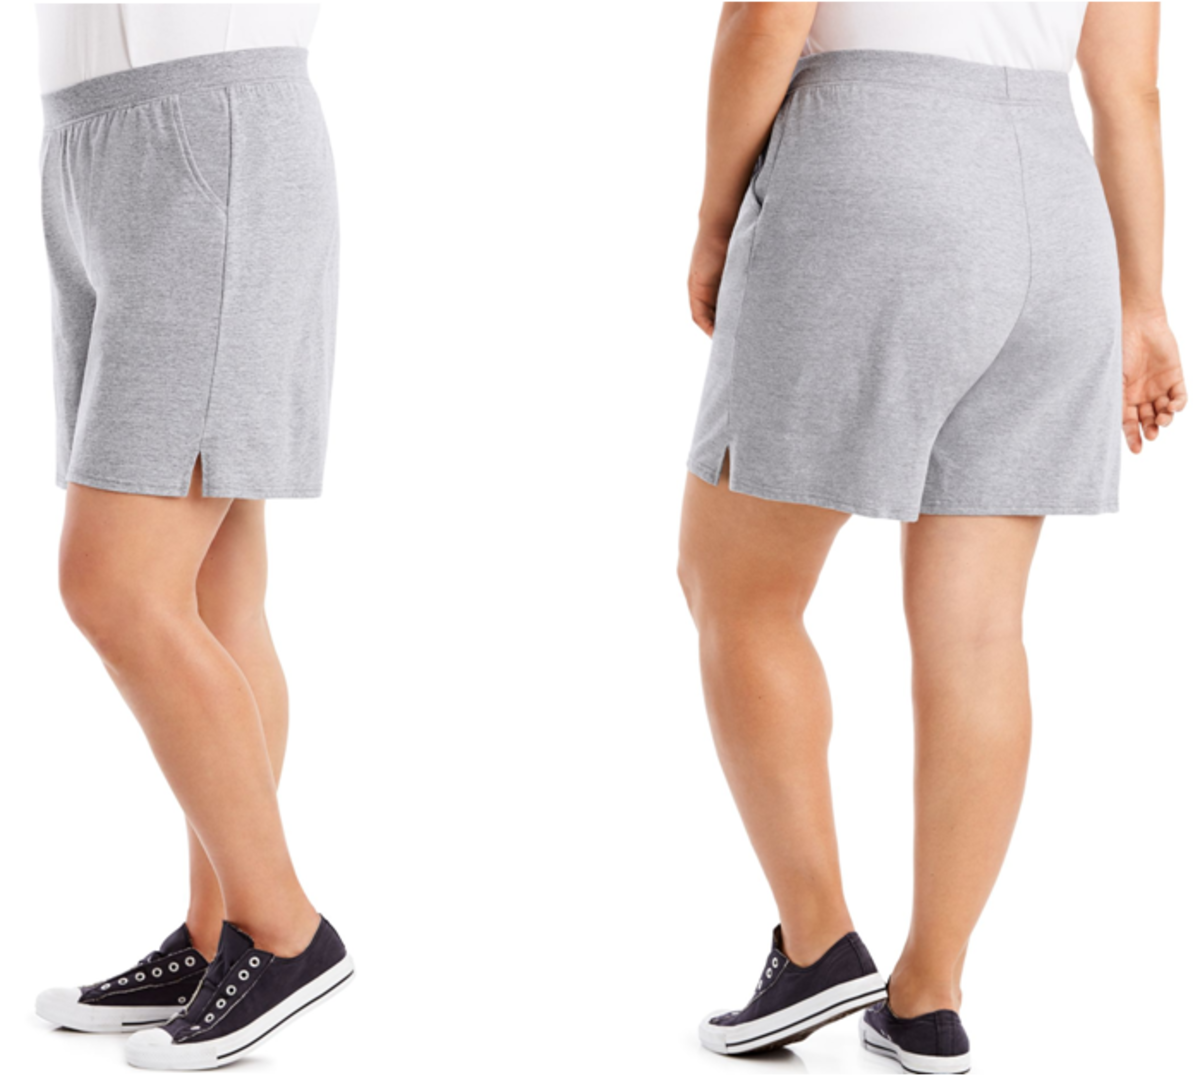 soft cotton jersey shorts with wide, ribbed elastic waist that flexes for ease of movement